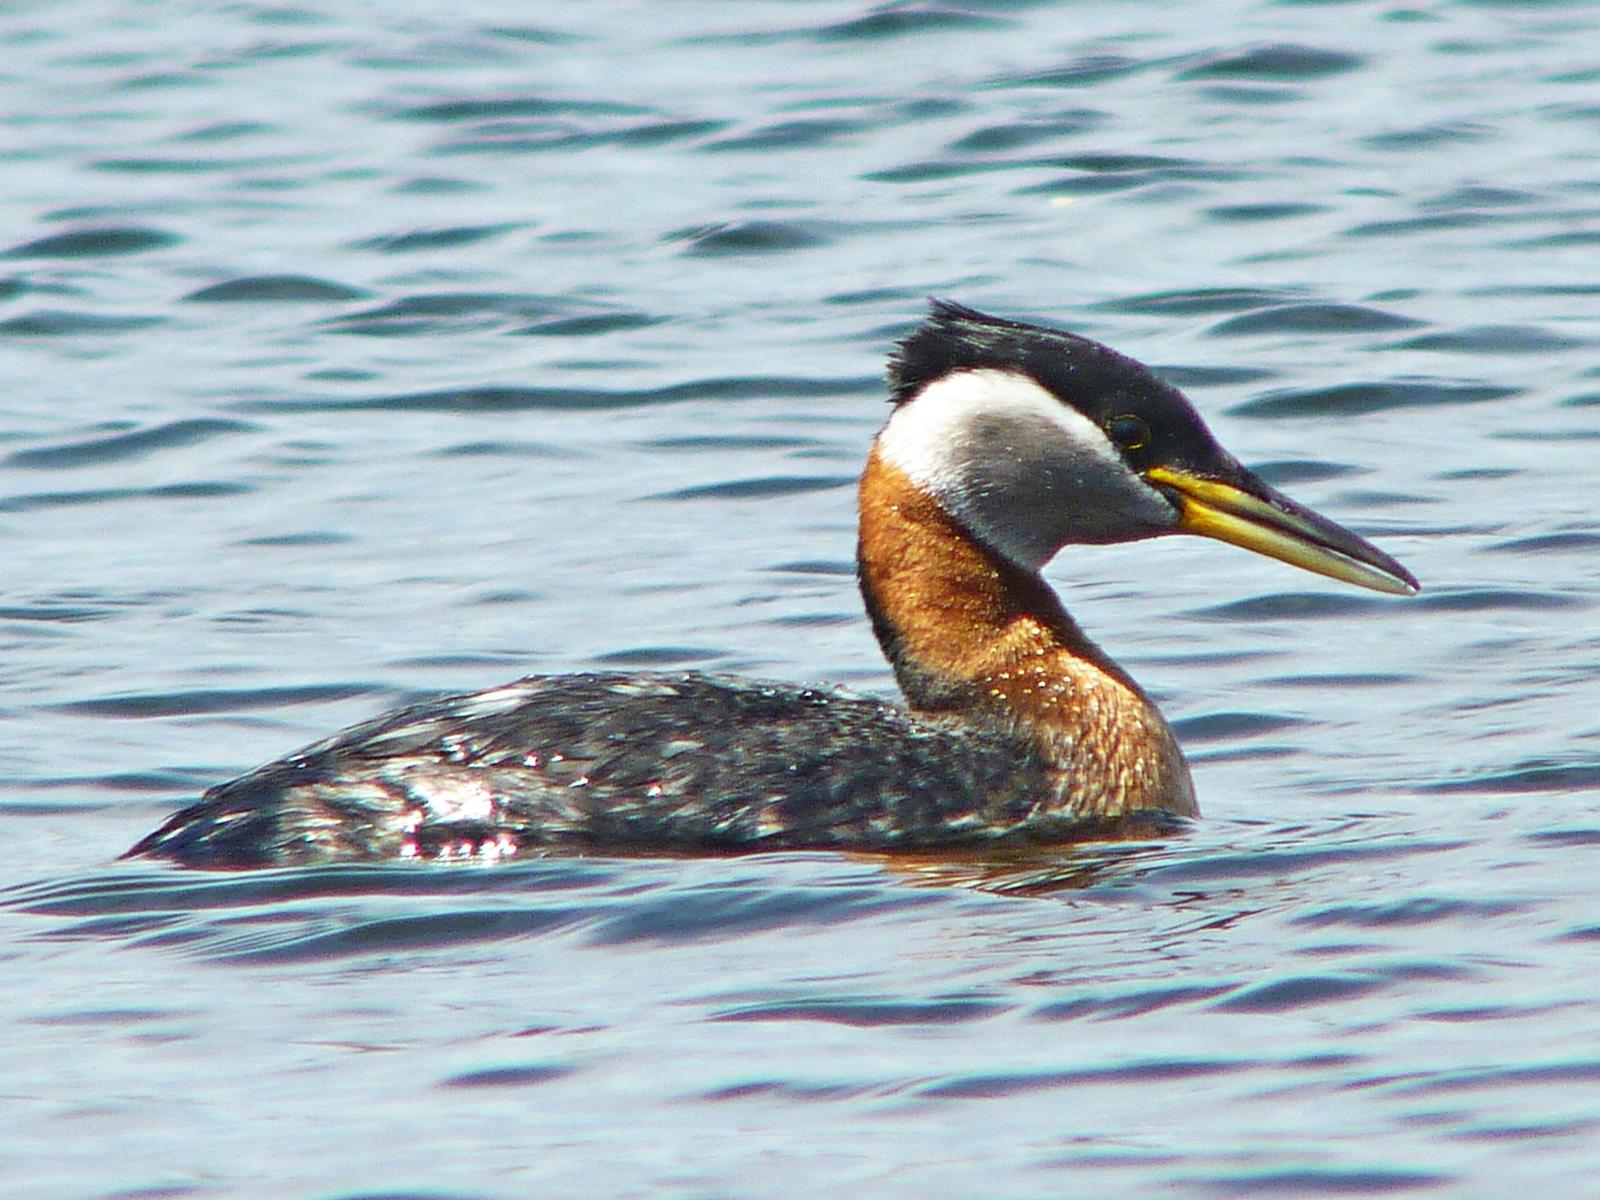 Red-necked Grebe Photo by Bob Neugebauer